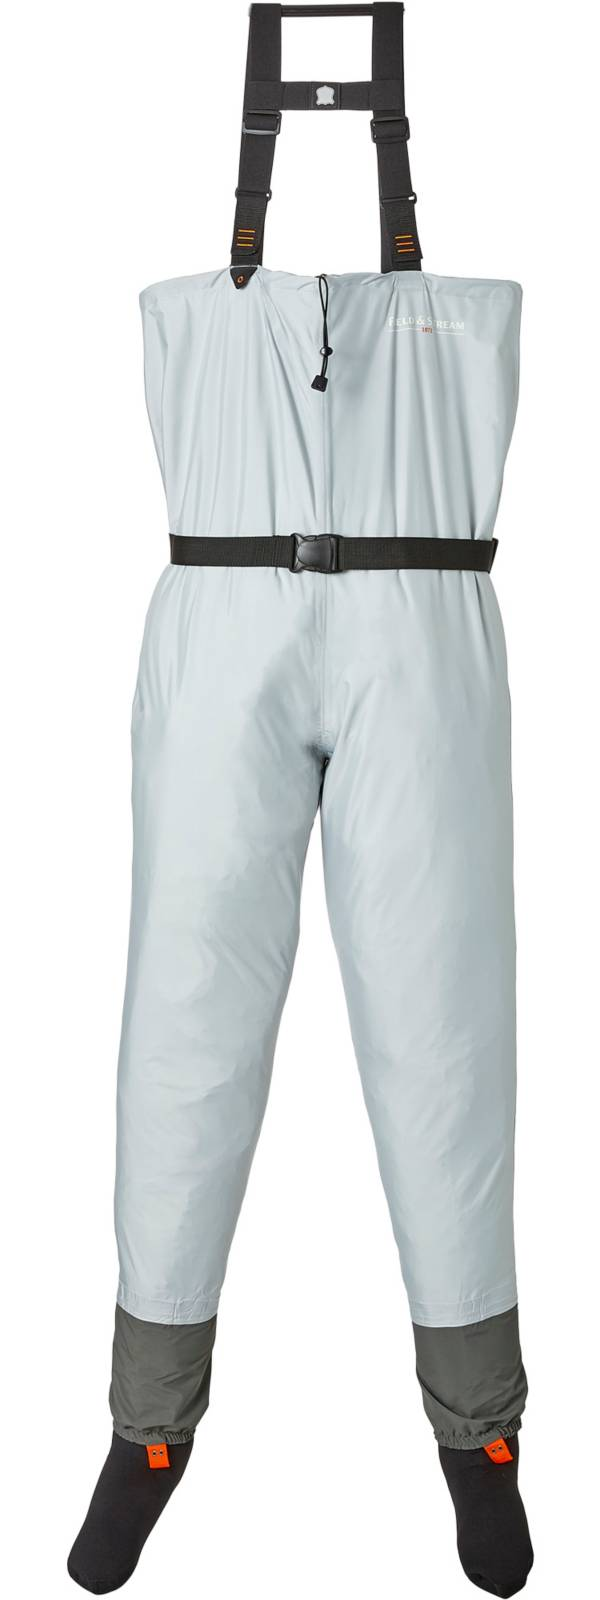 Field & Stream Seneca Packable Chest Waders product image